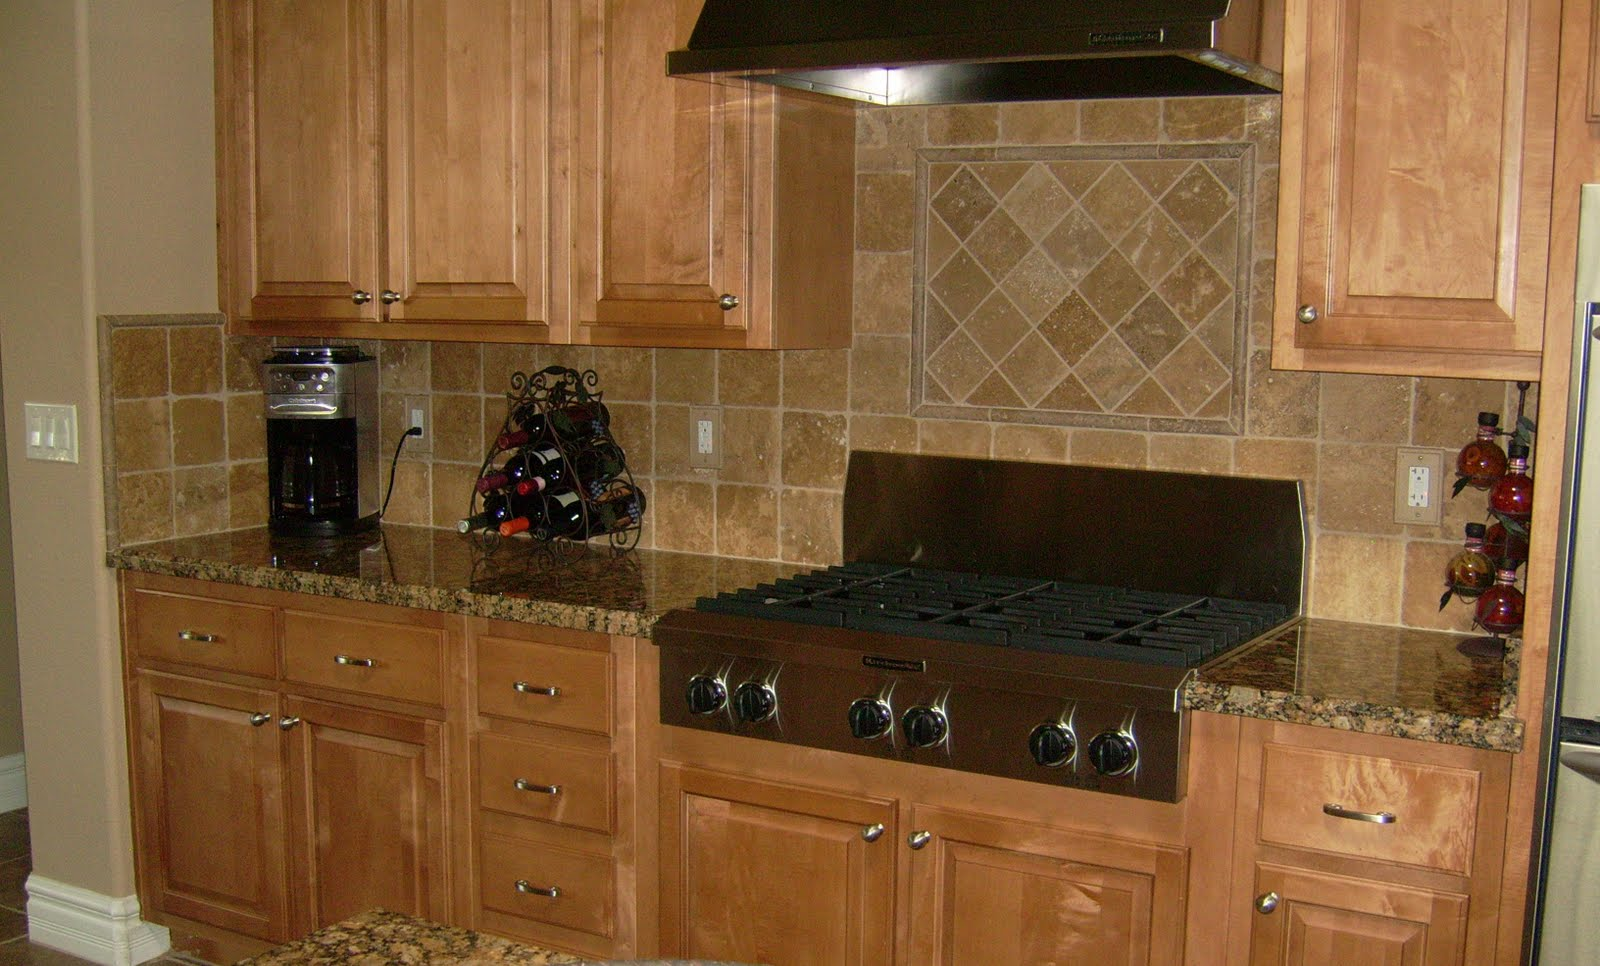 pictures kitchen backsplash ideas.jpg